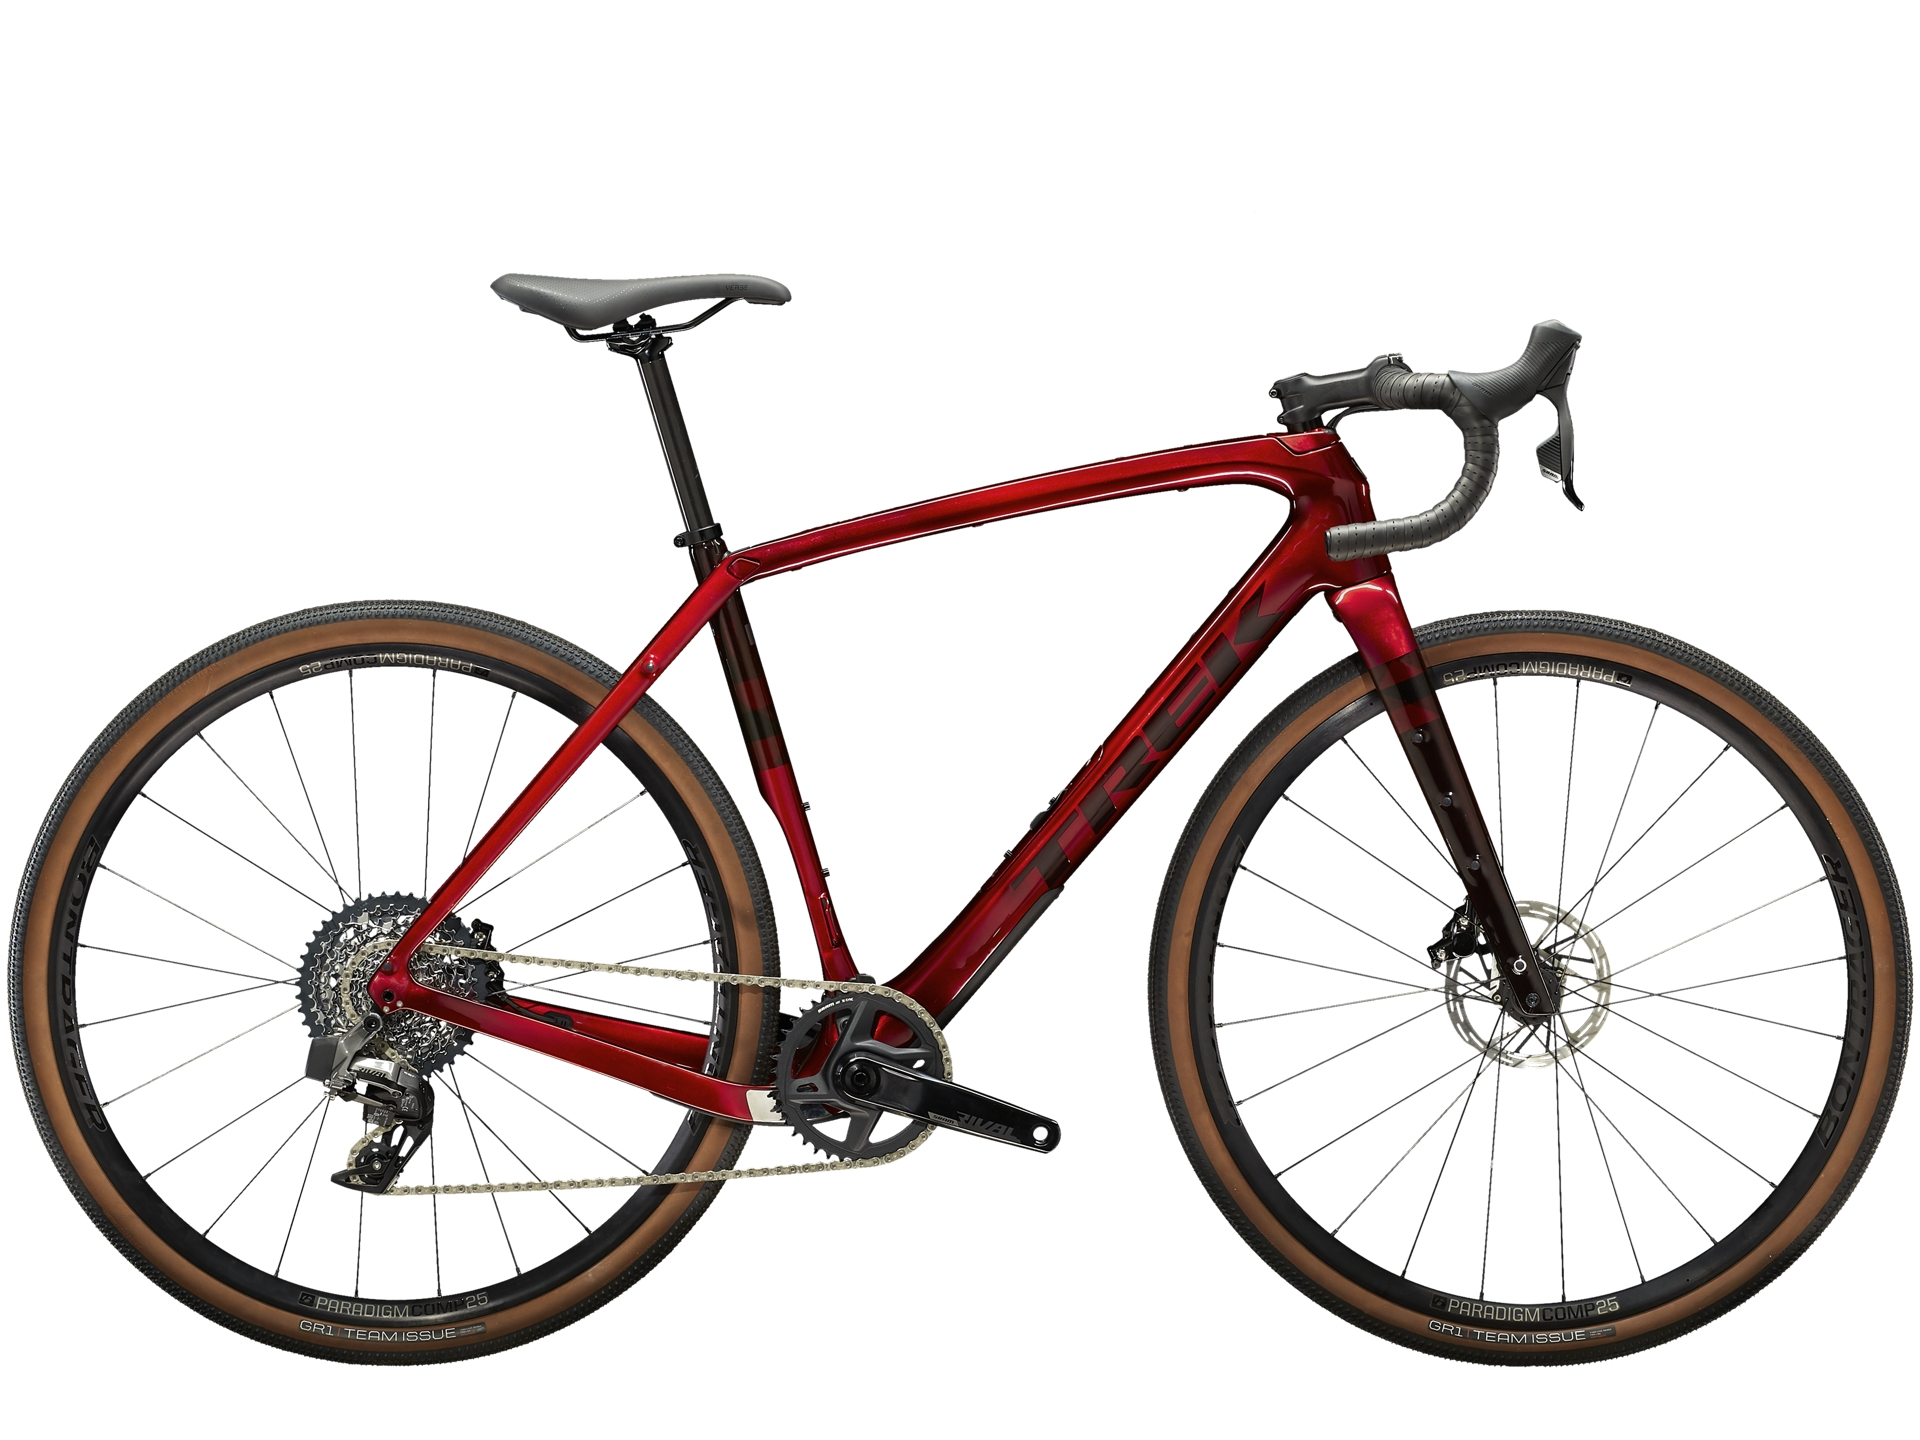 Trek introduced its revamped Checkpoint gravel bikes 5